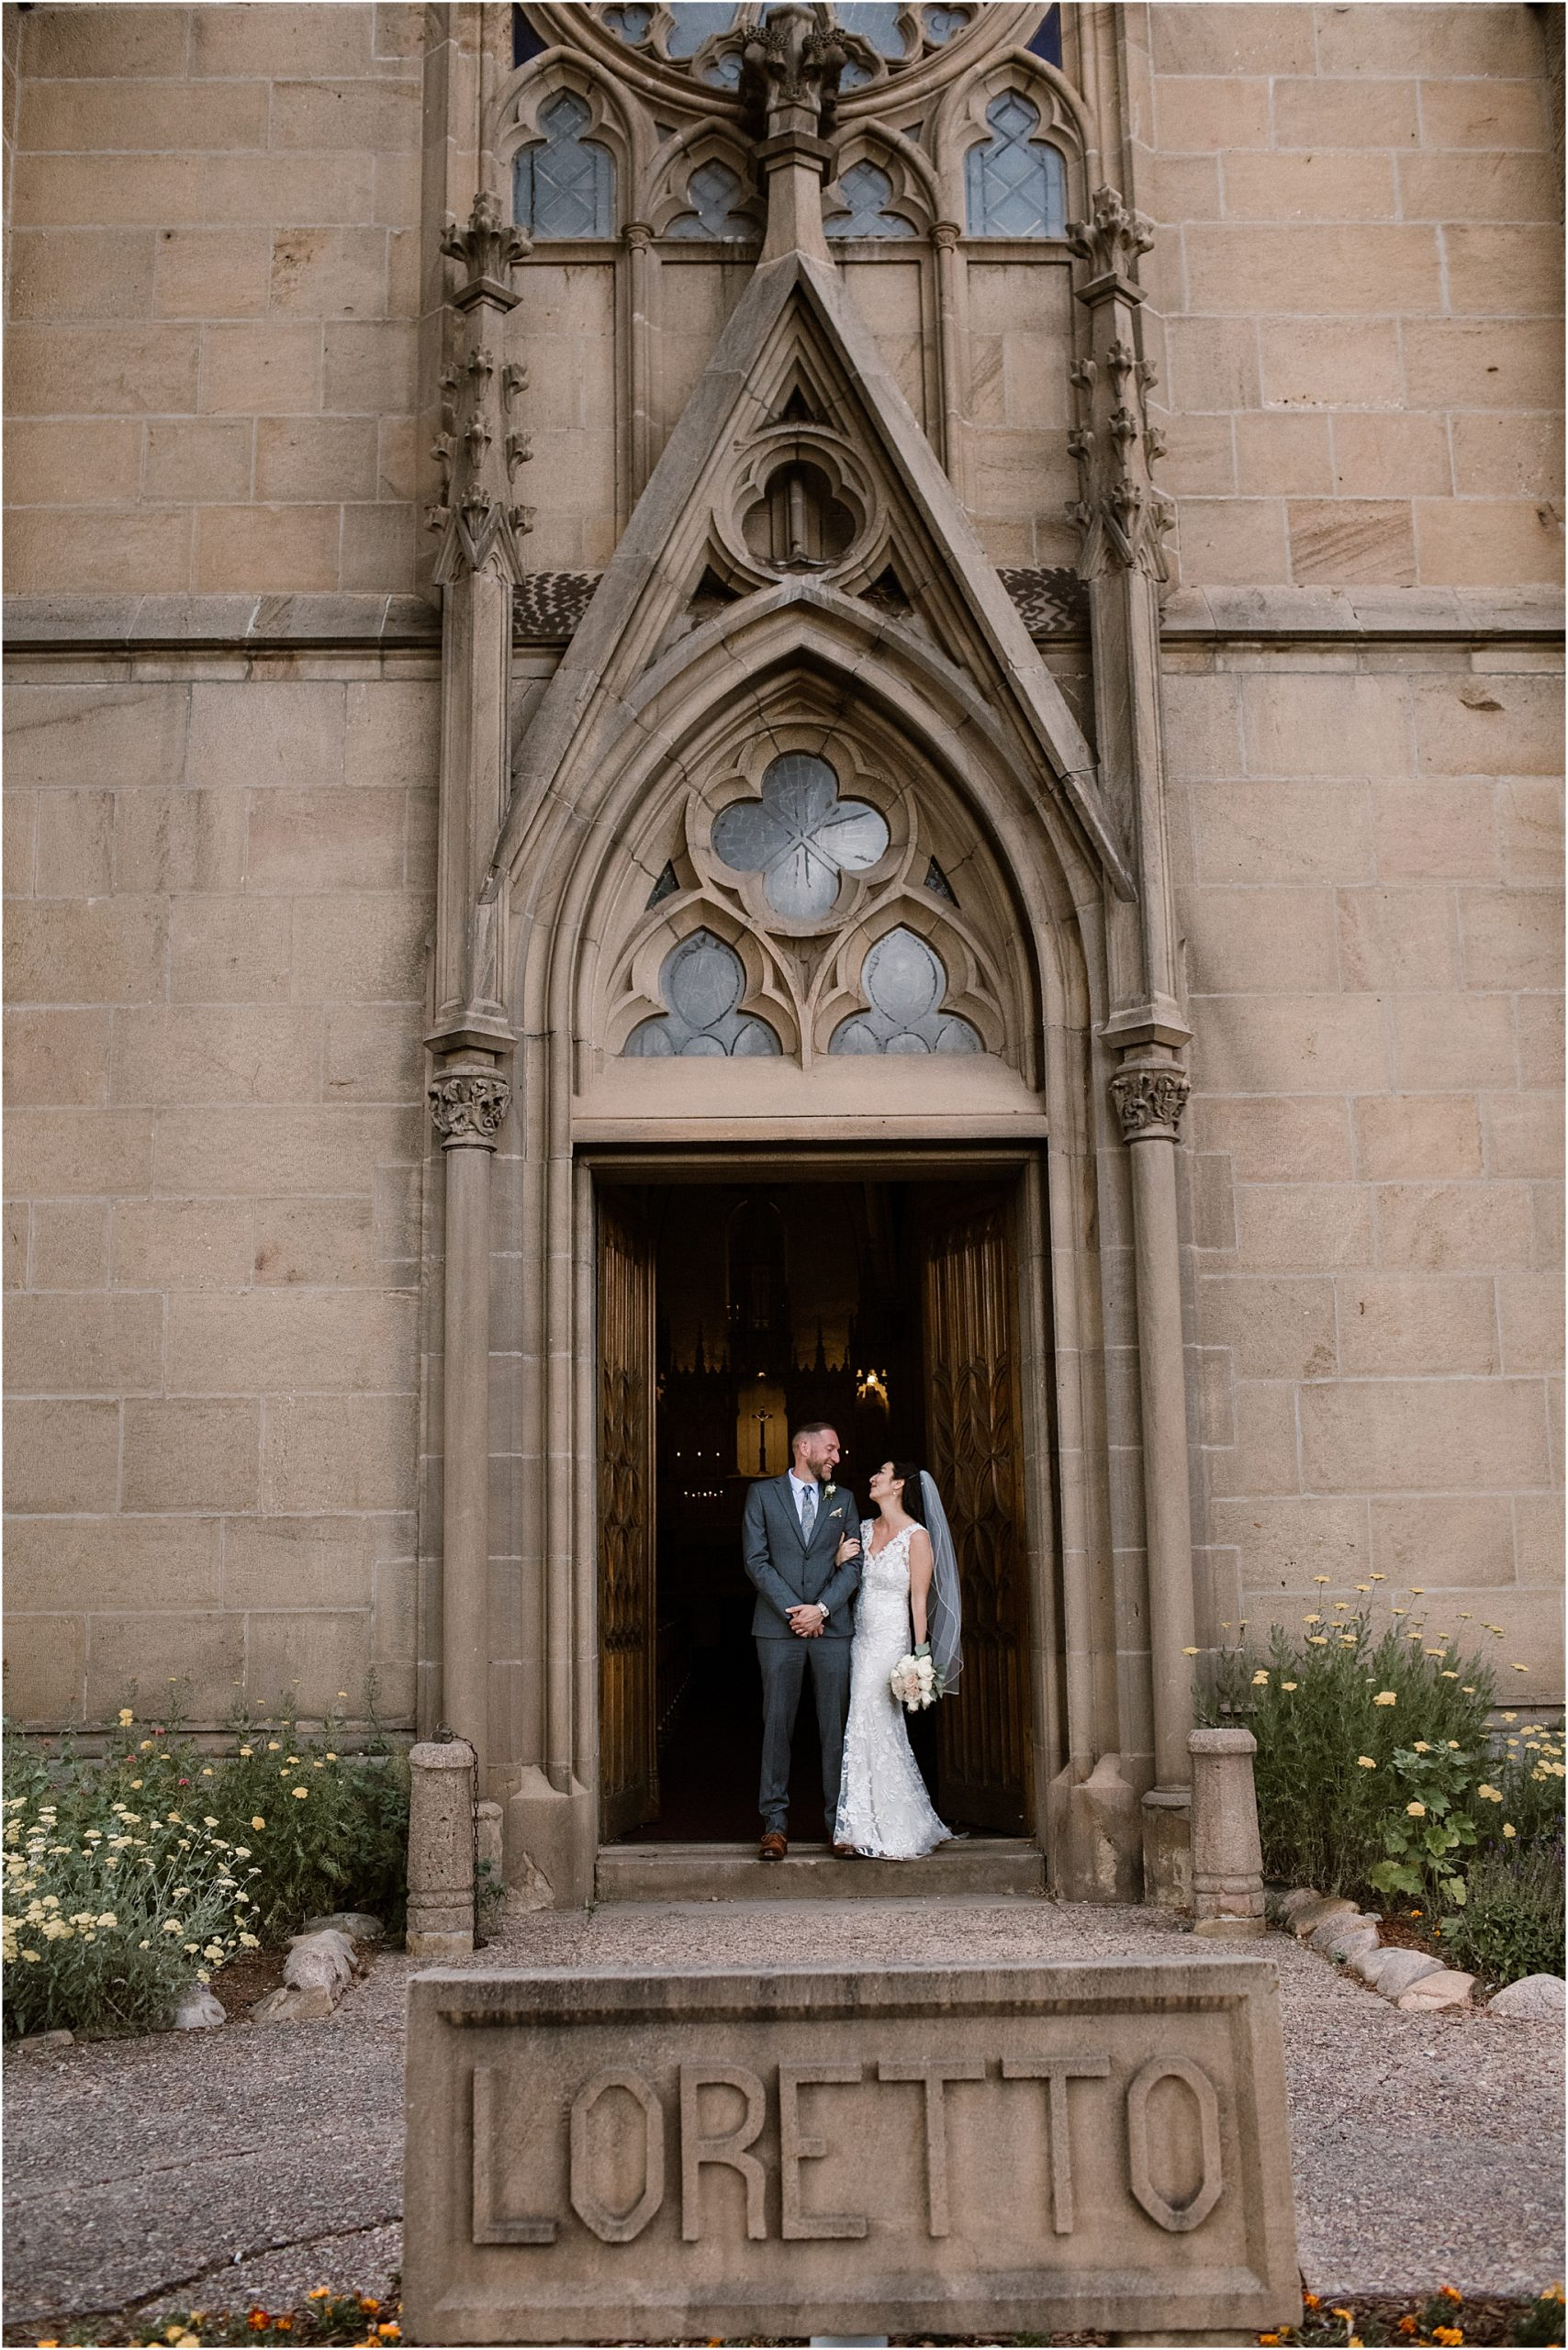 BlueRosePhotography_LaurenandCharles_LorettoChapel17